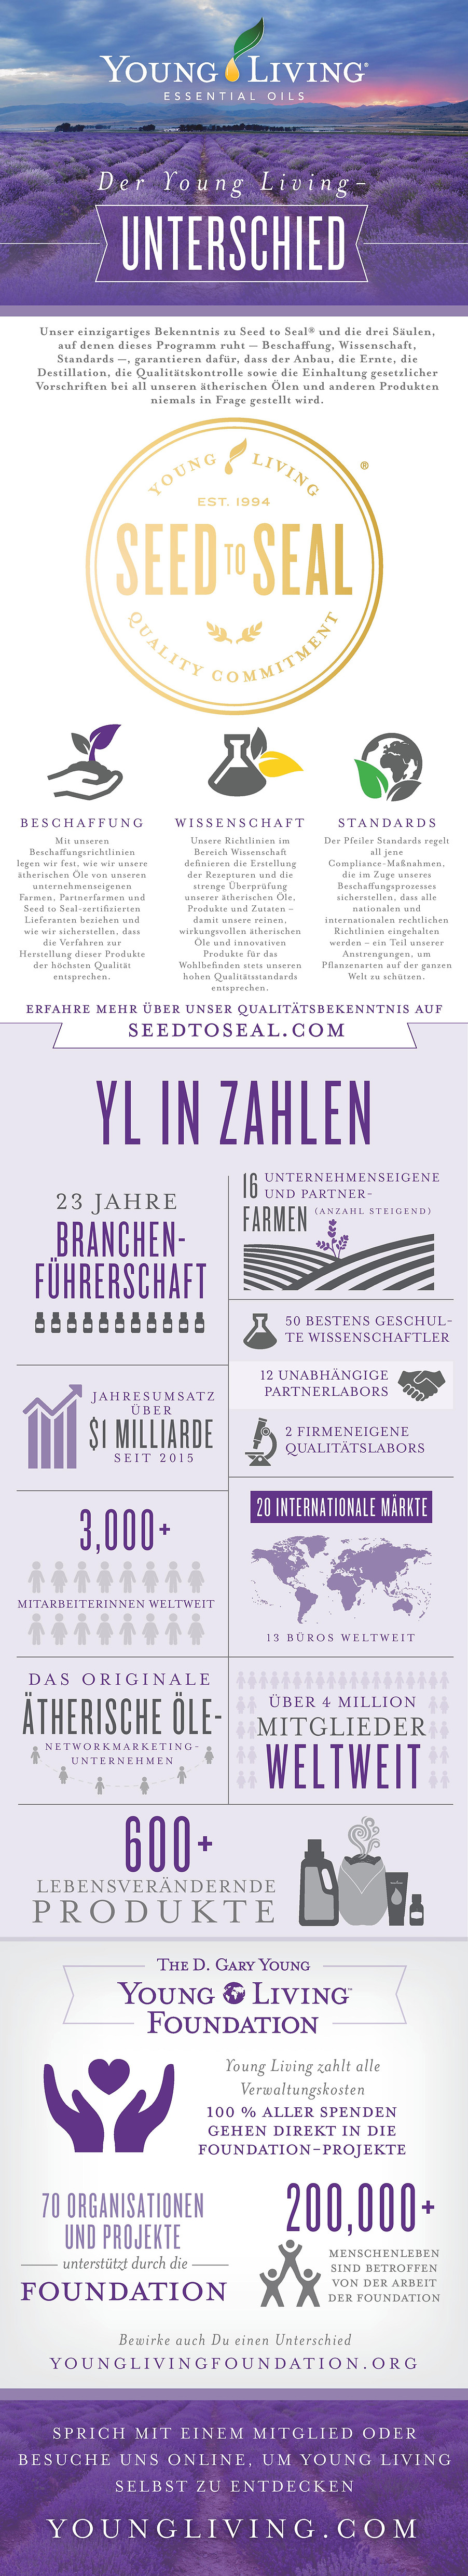 Der Young Living Unterschied